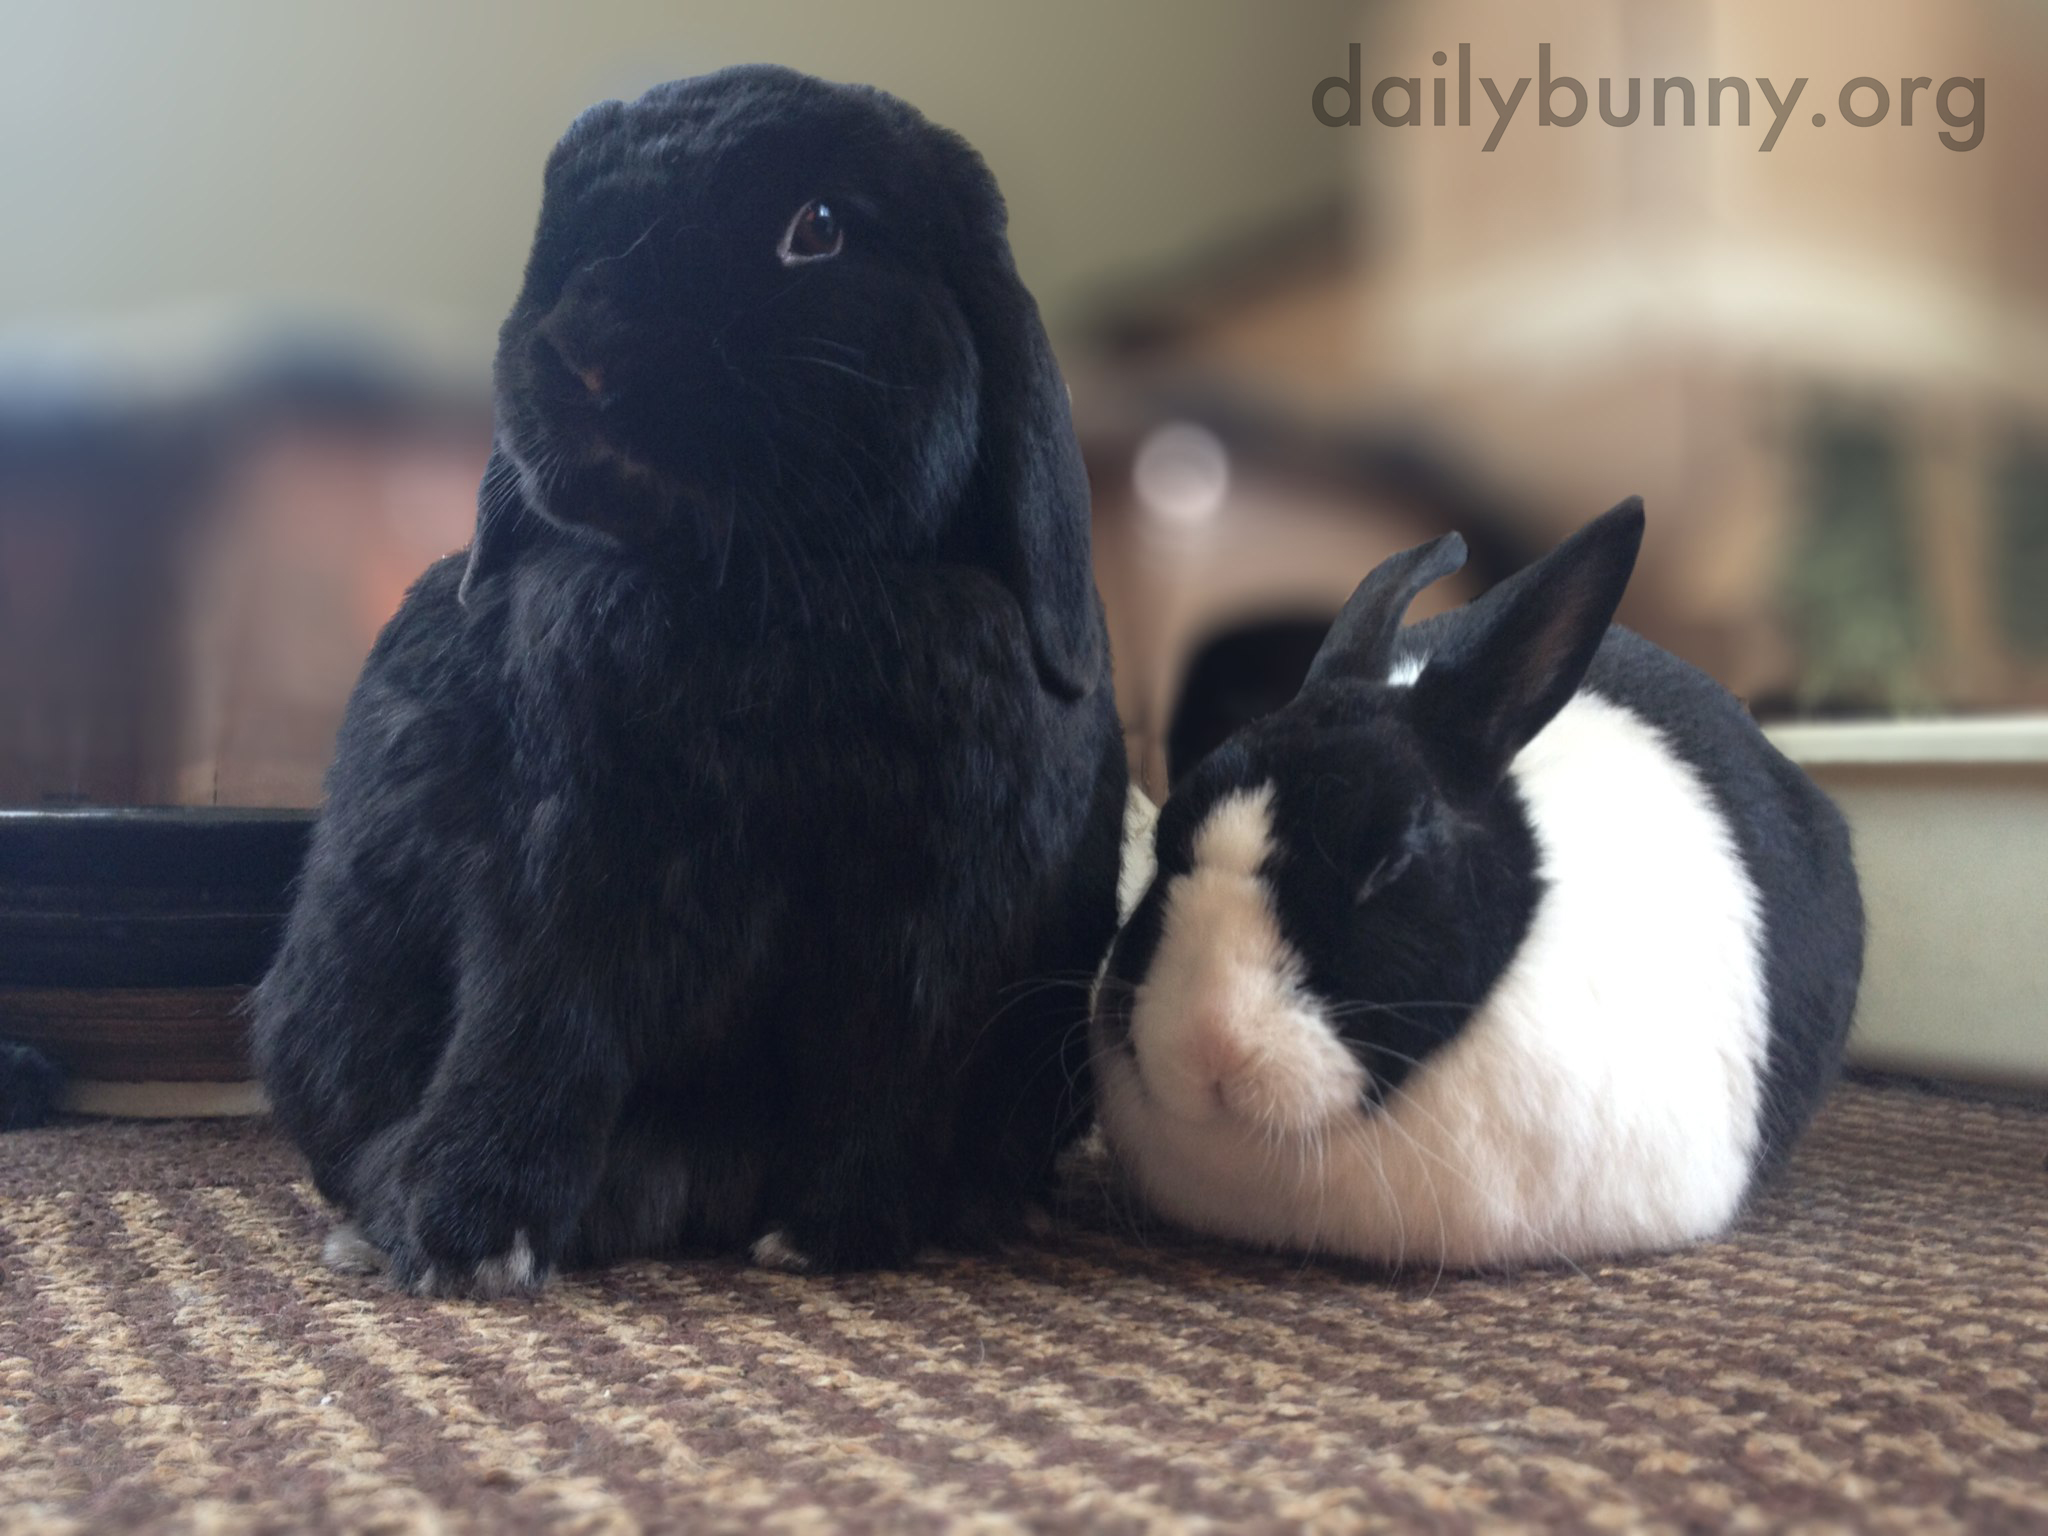 Bunny Friends Are So Fluffy and Round 1